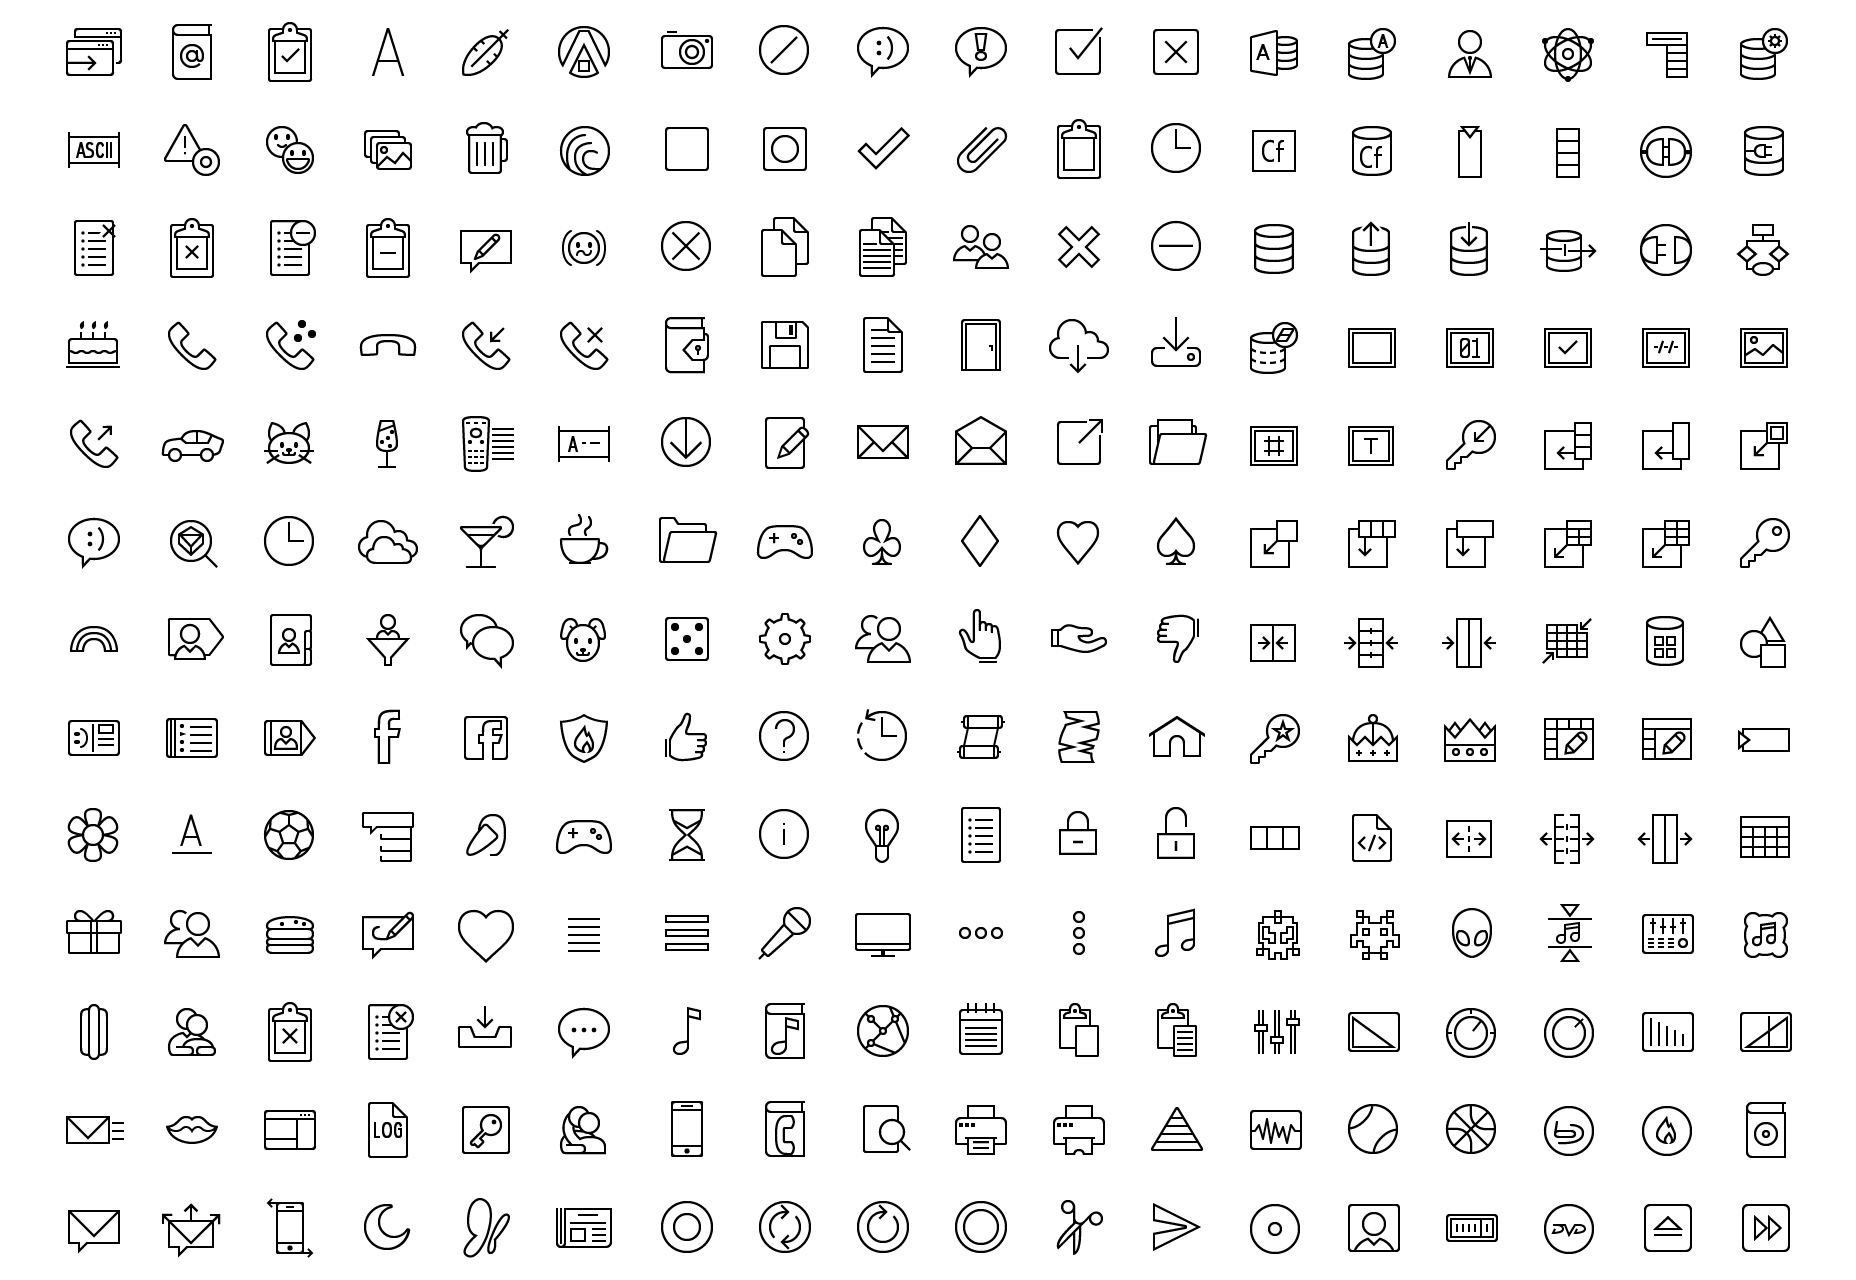 outline-filled-vector-icons-collection-